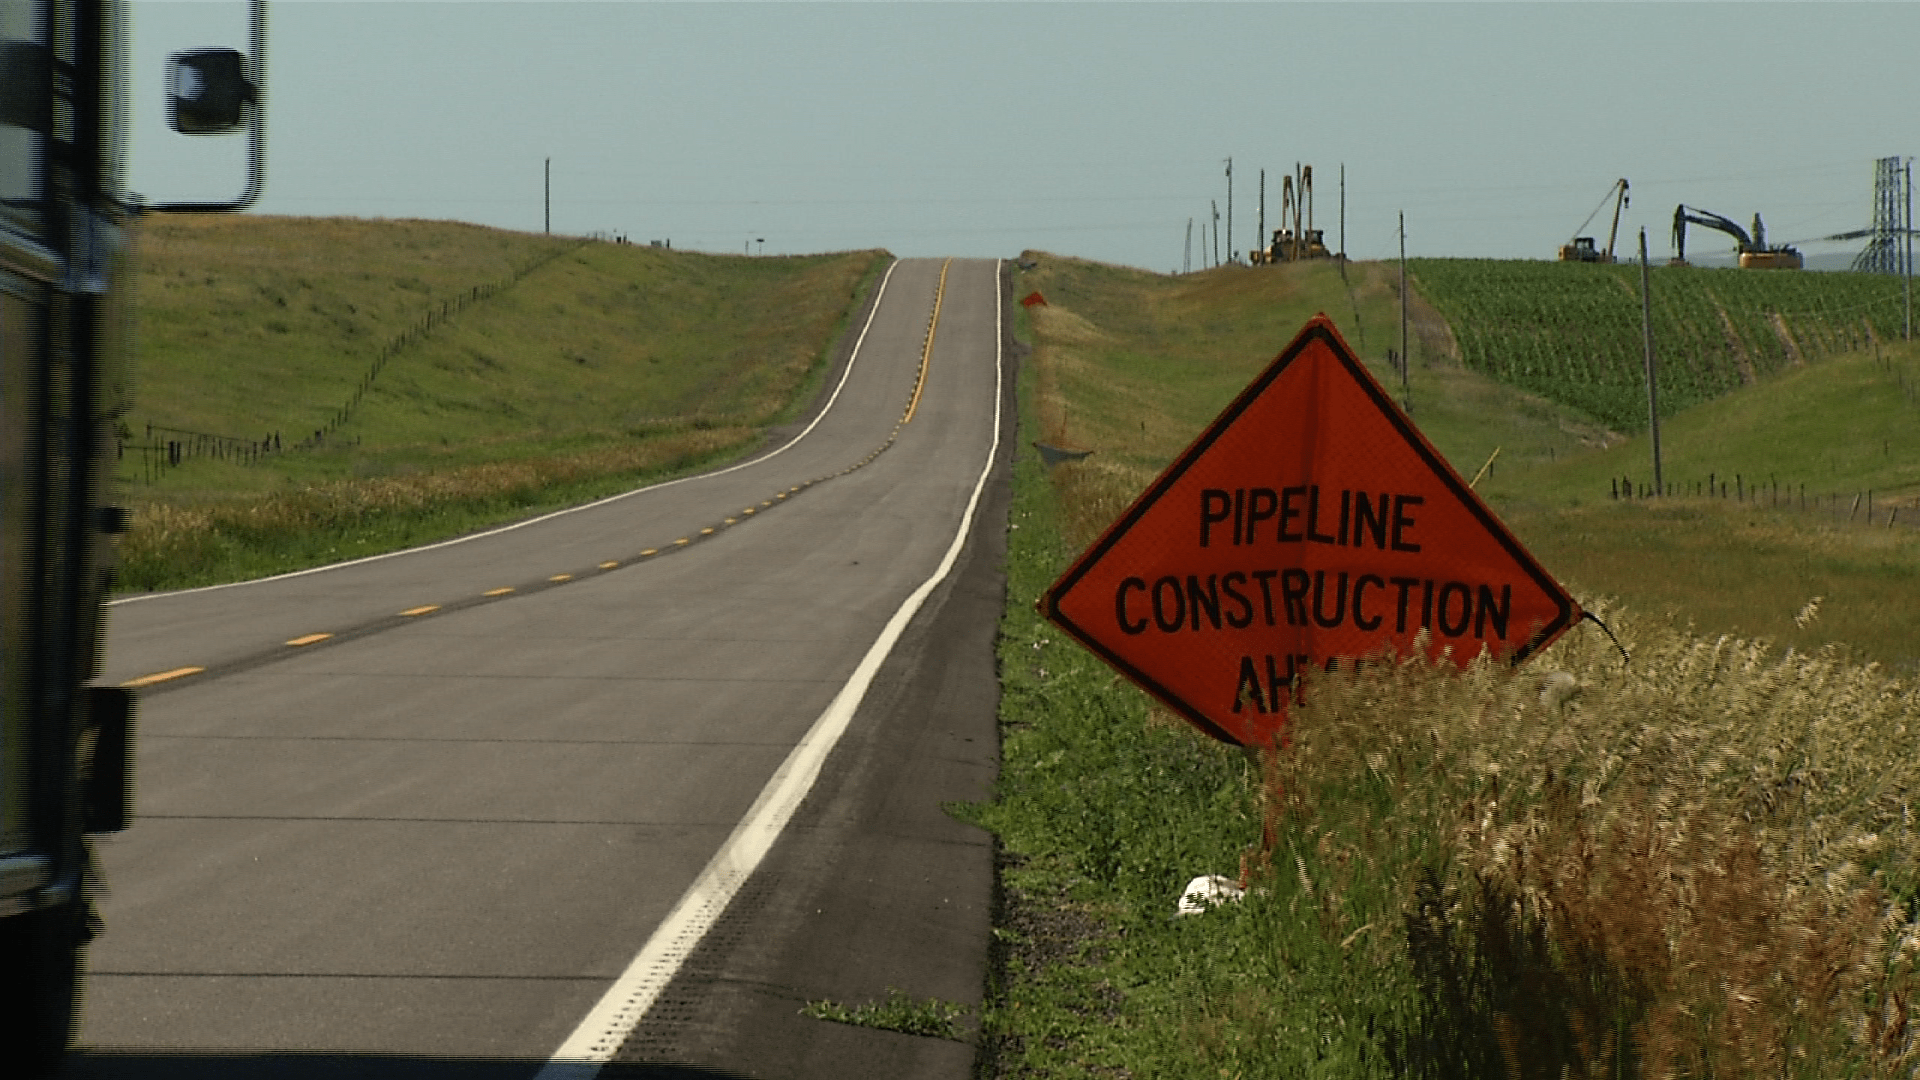 A construction sign in Southern North Dakota